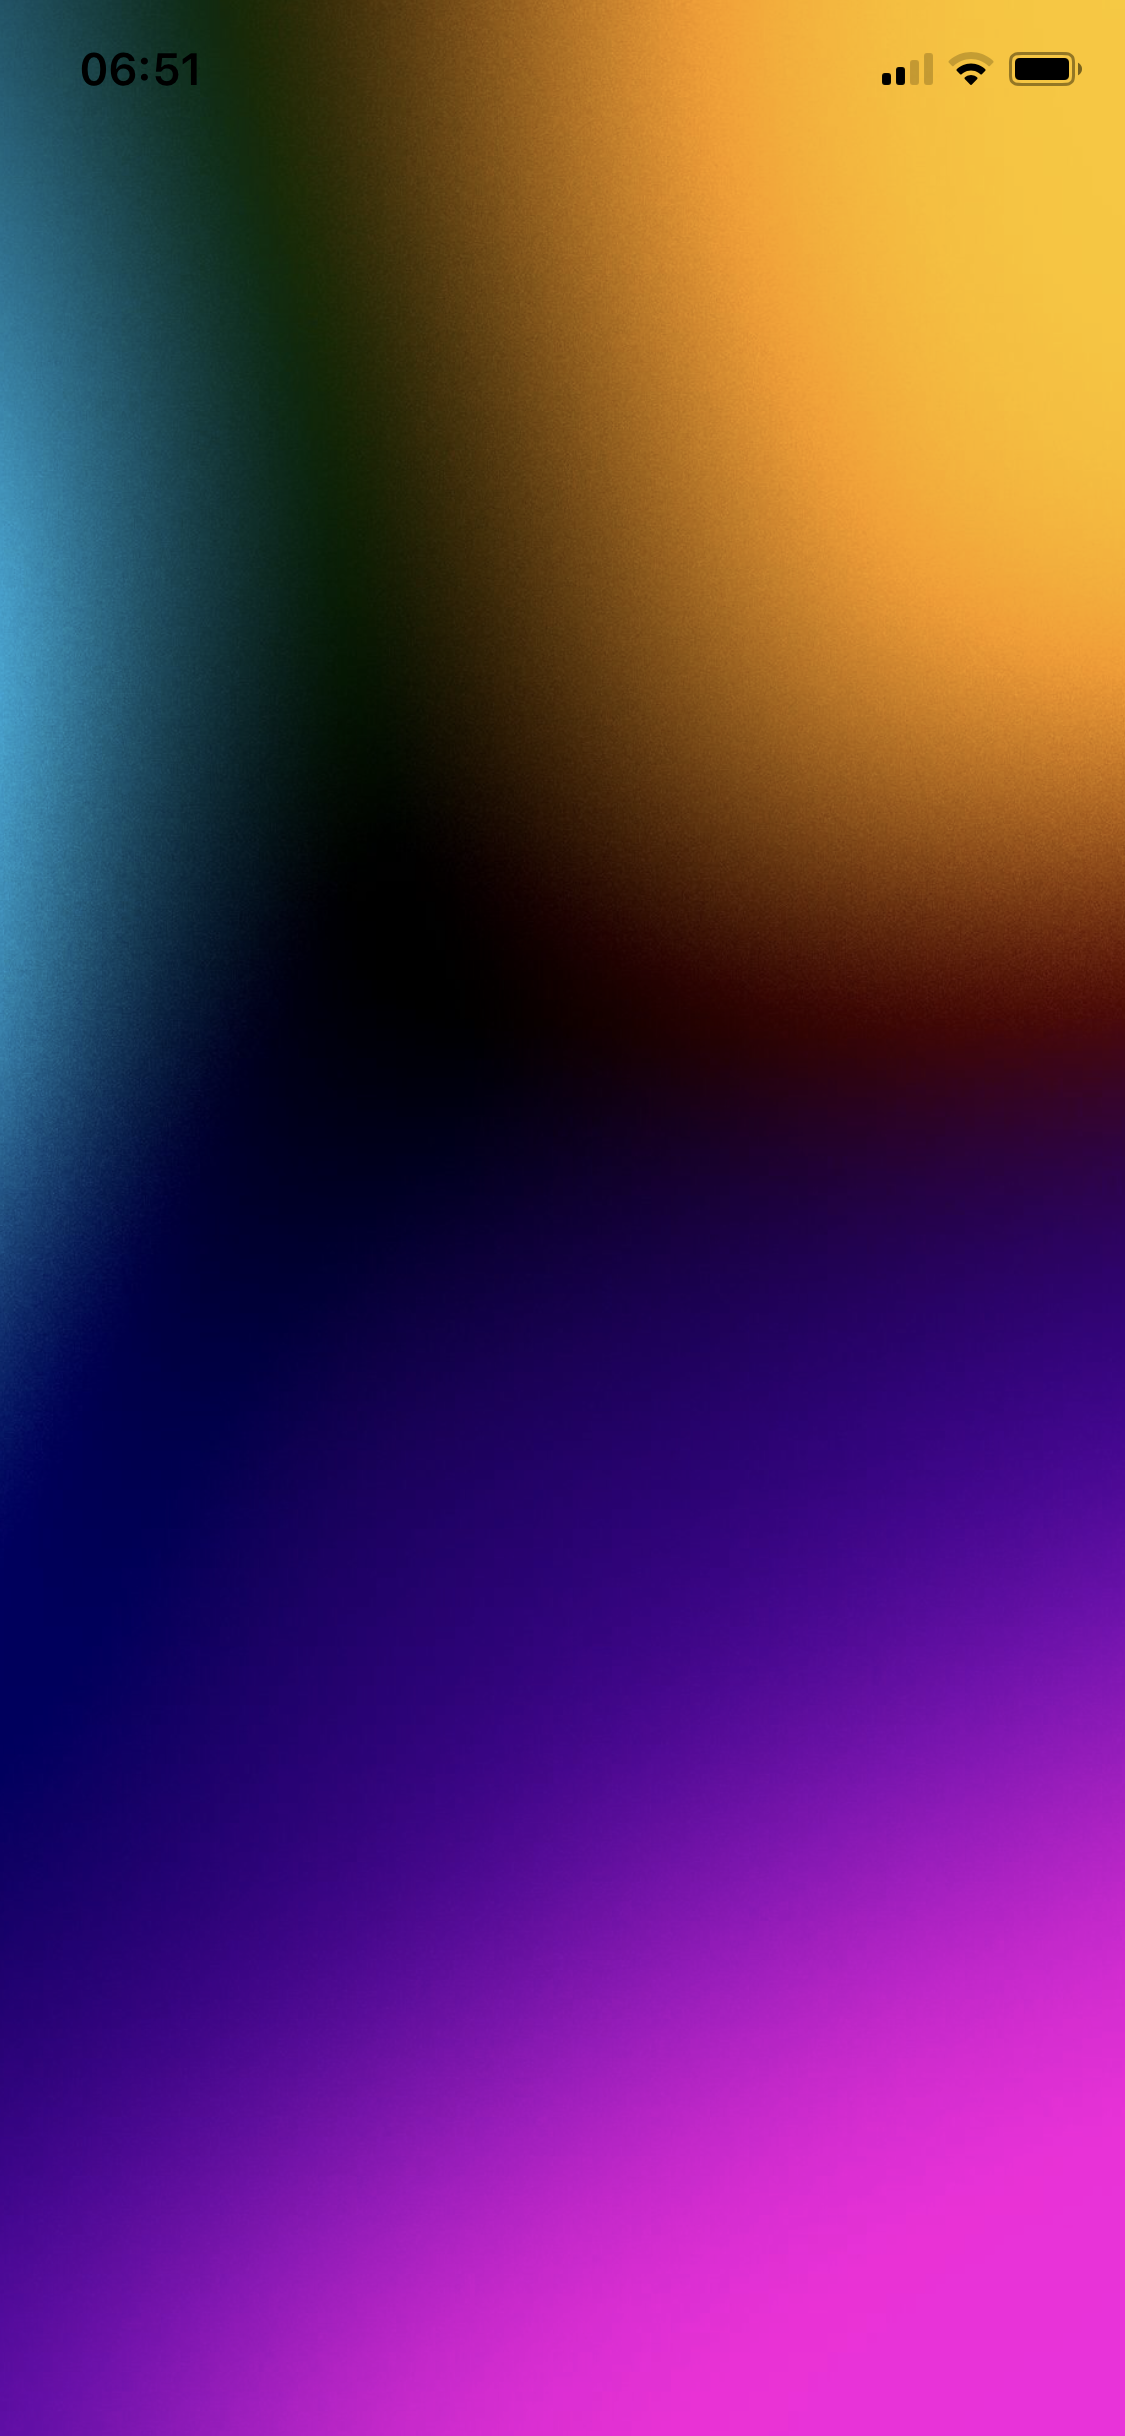 gradient blurred colorful Background for photography